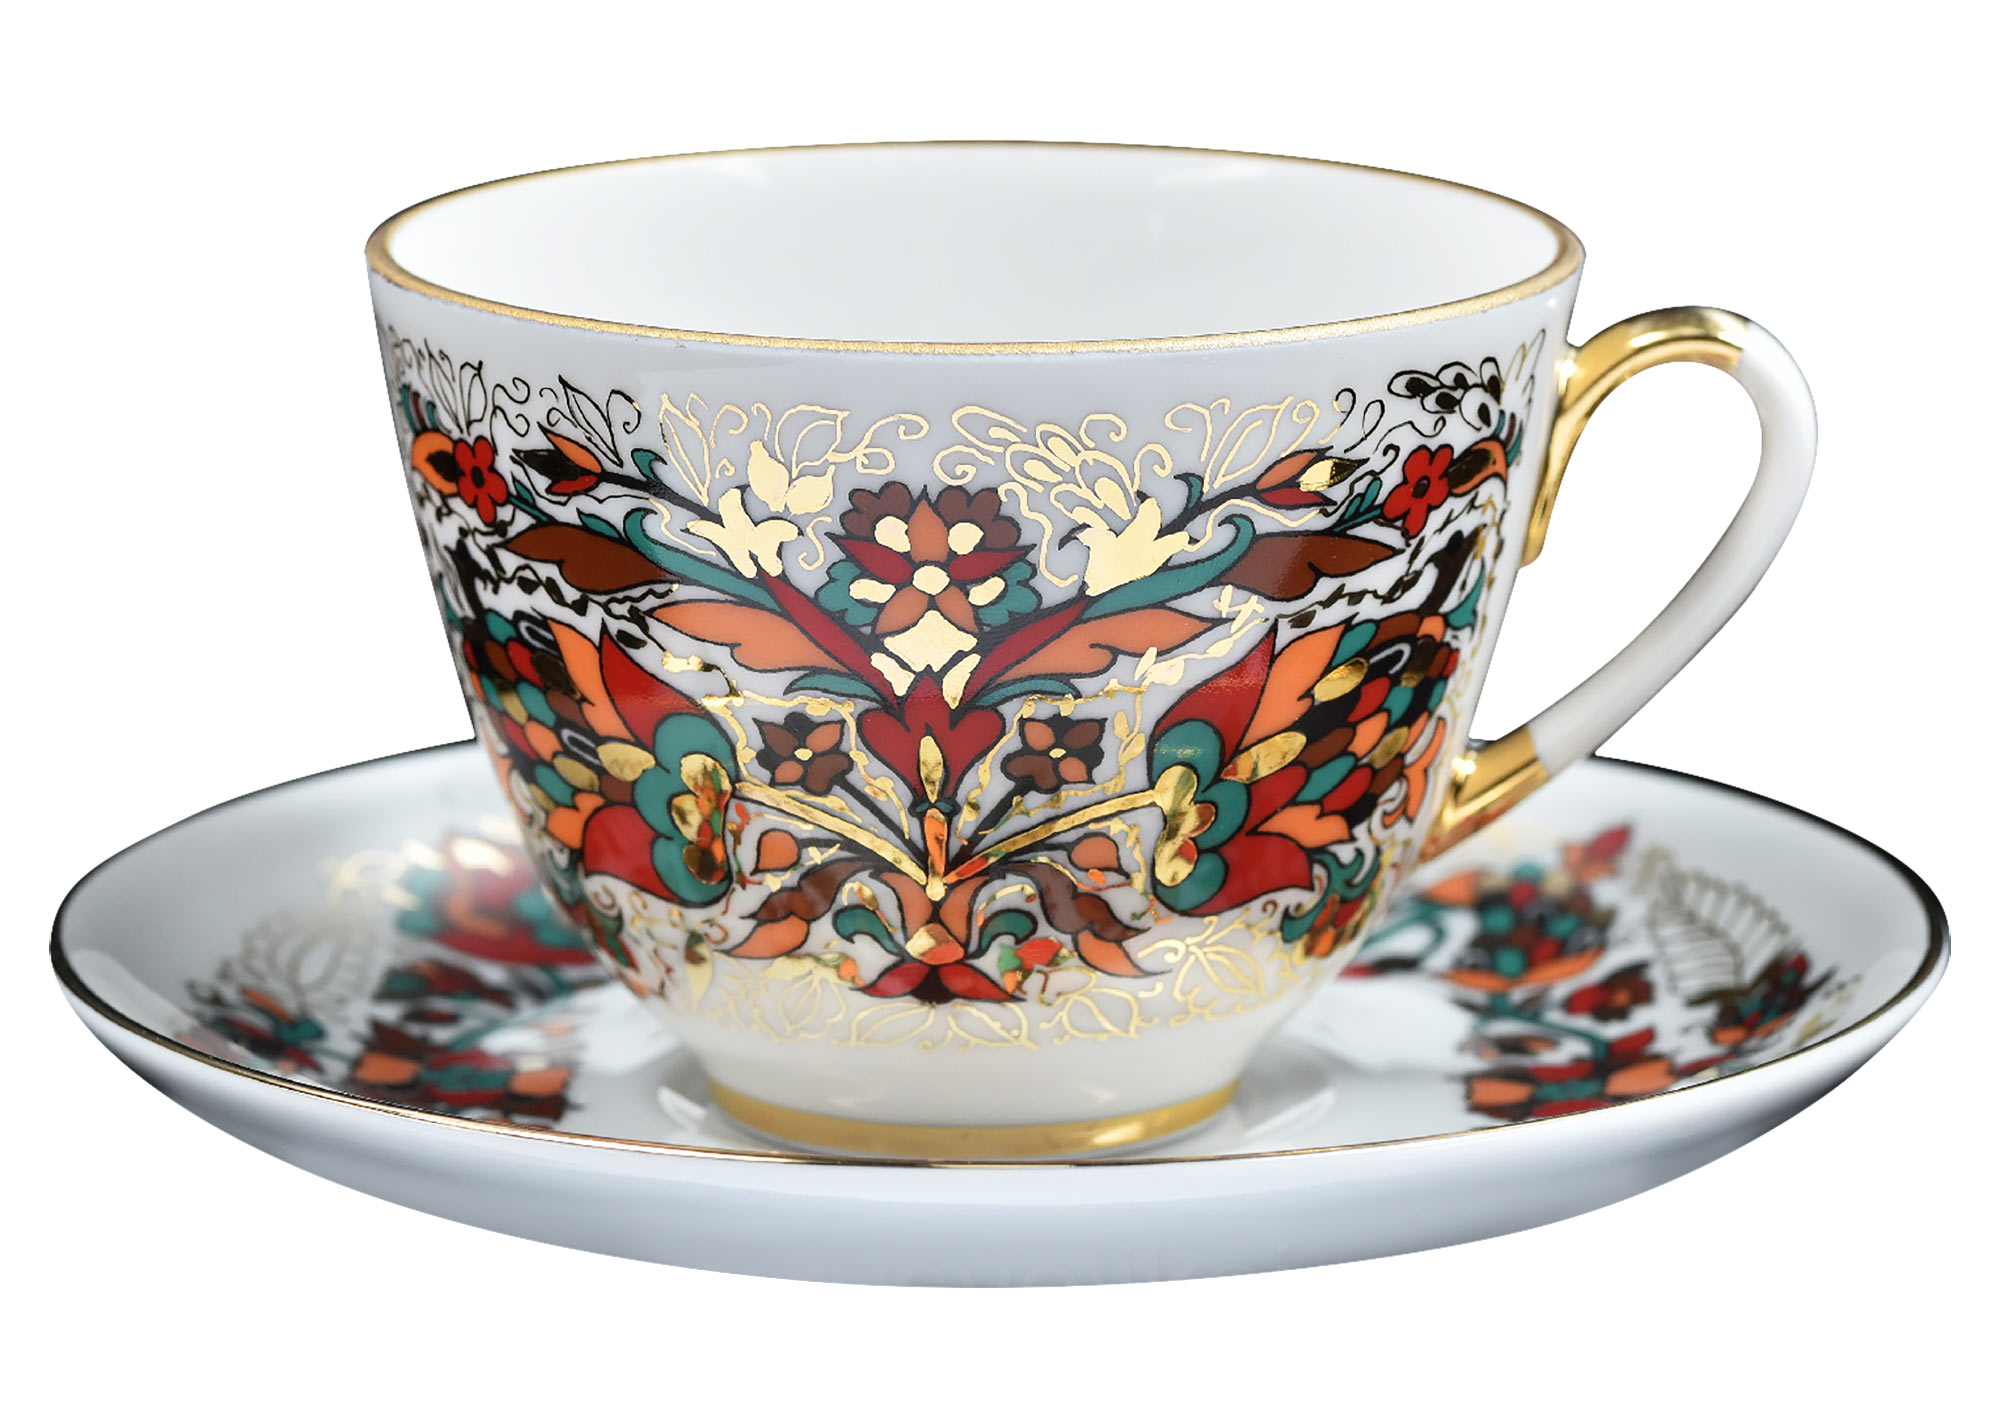 Buy Red and Gold Rooster Cup and Saucer at GoldenCockerel.com